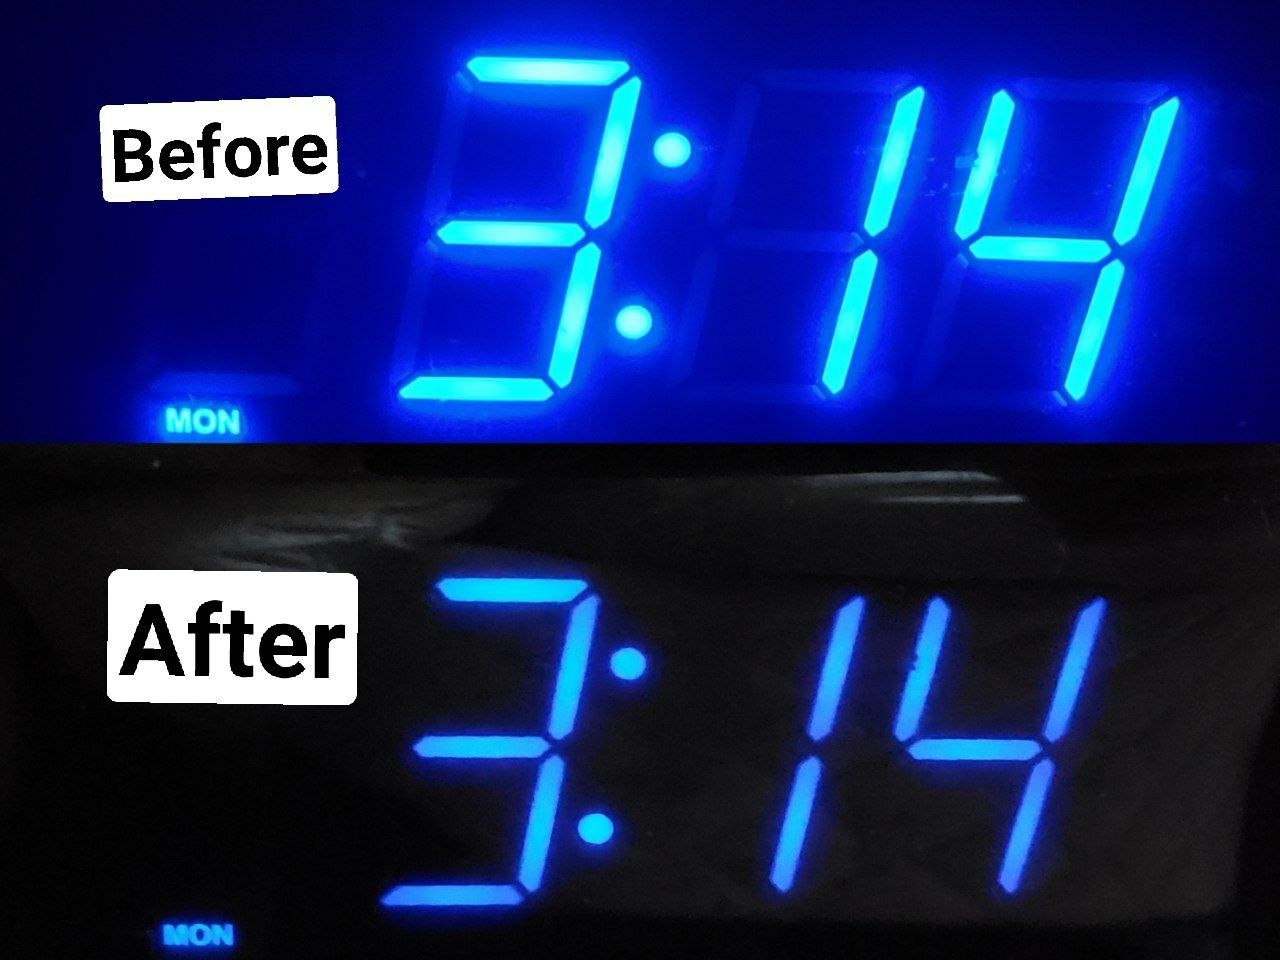 a before and after of a reviewer's clock with the numbers super bright and then toned down but still legible